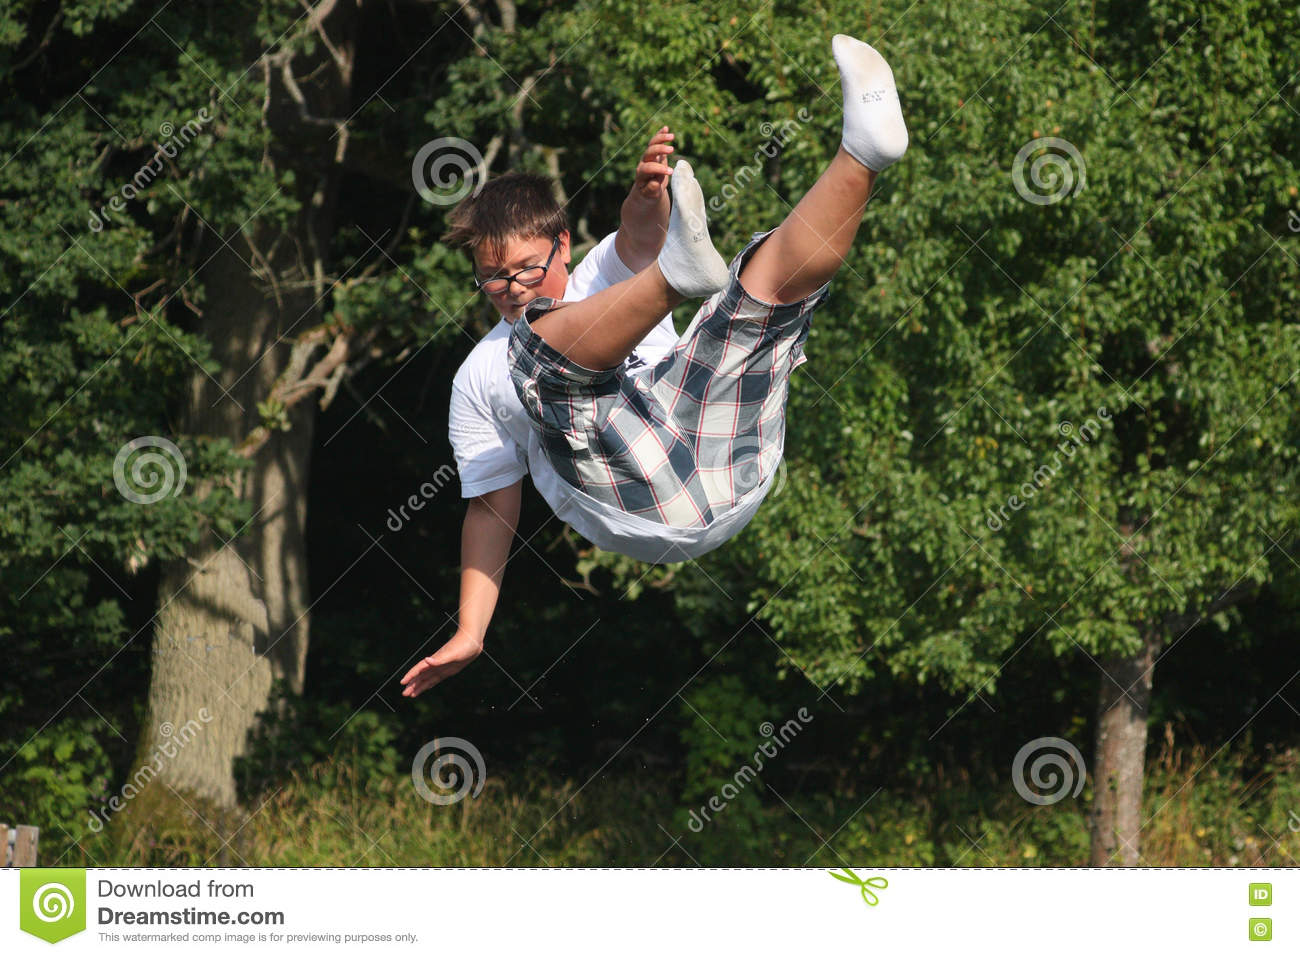 Stock Photo Boy Falling Down Tree Image72623276 also 3mwgp2 together with Most stylish character this season in addition Watch in addition Stock Images Legal Advice Image28912964. on falling down stairs